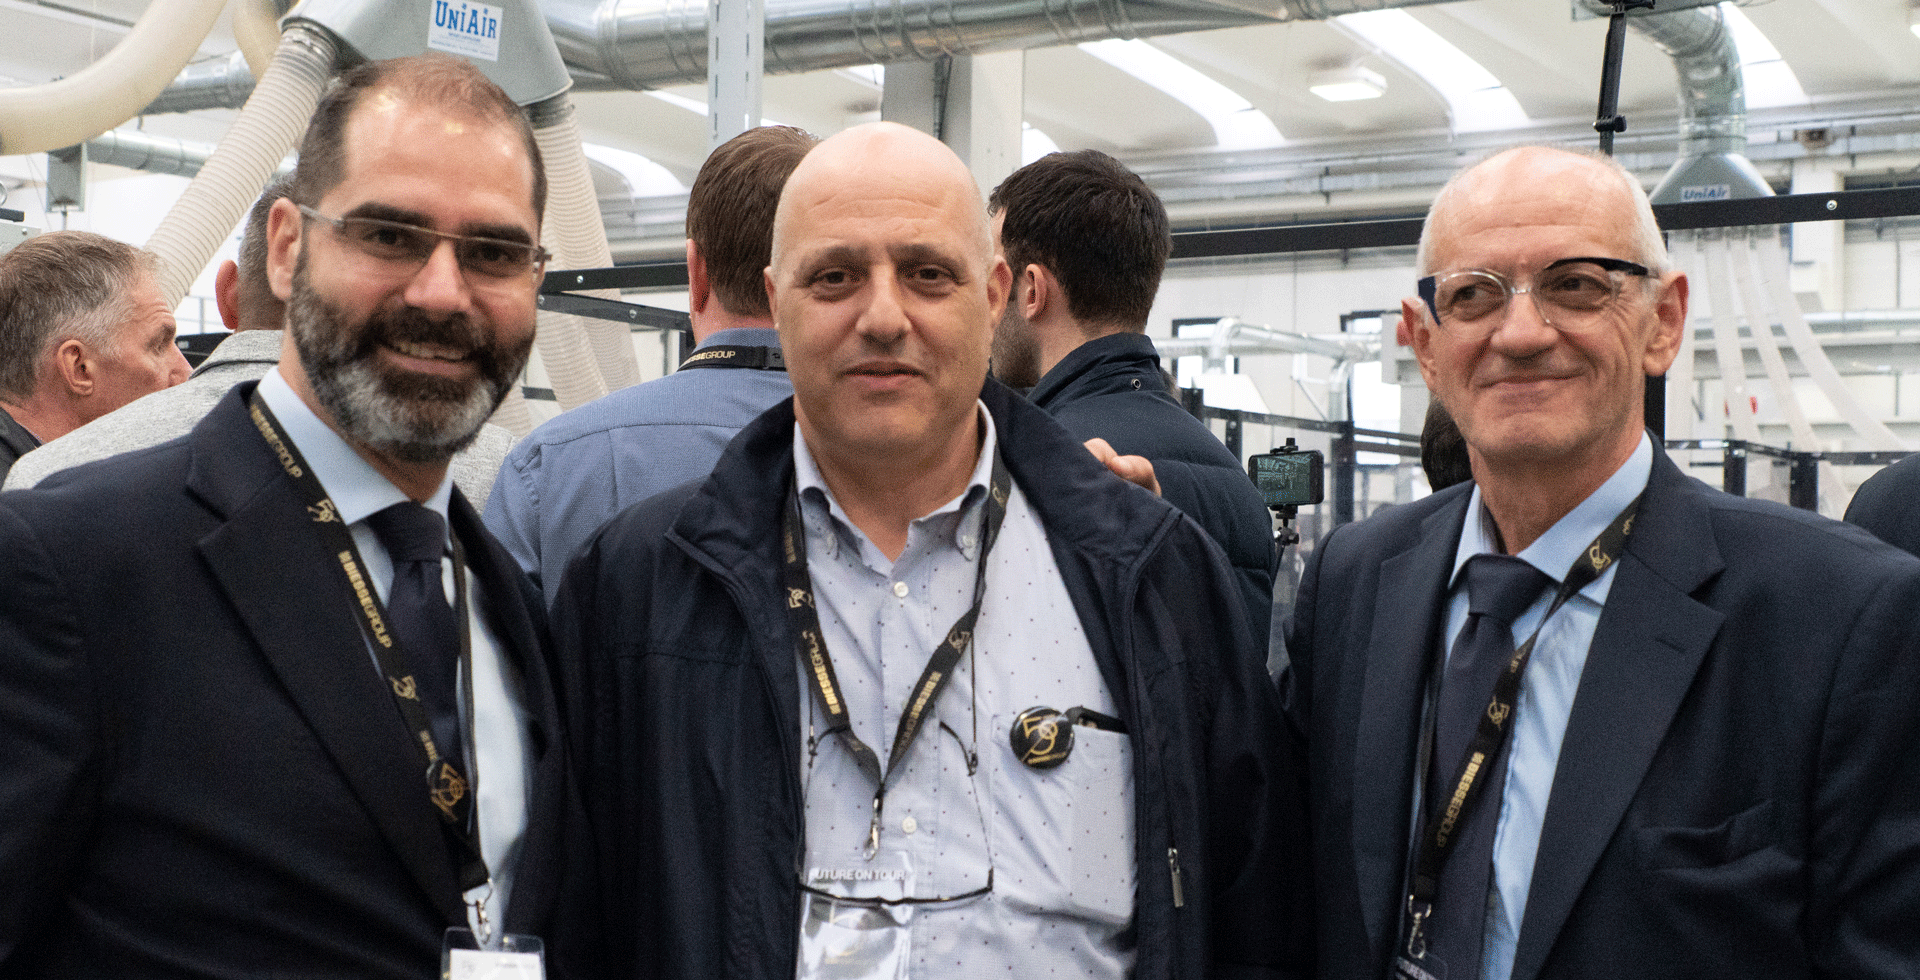 Inside Biesse 2019: Photo 11